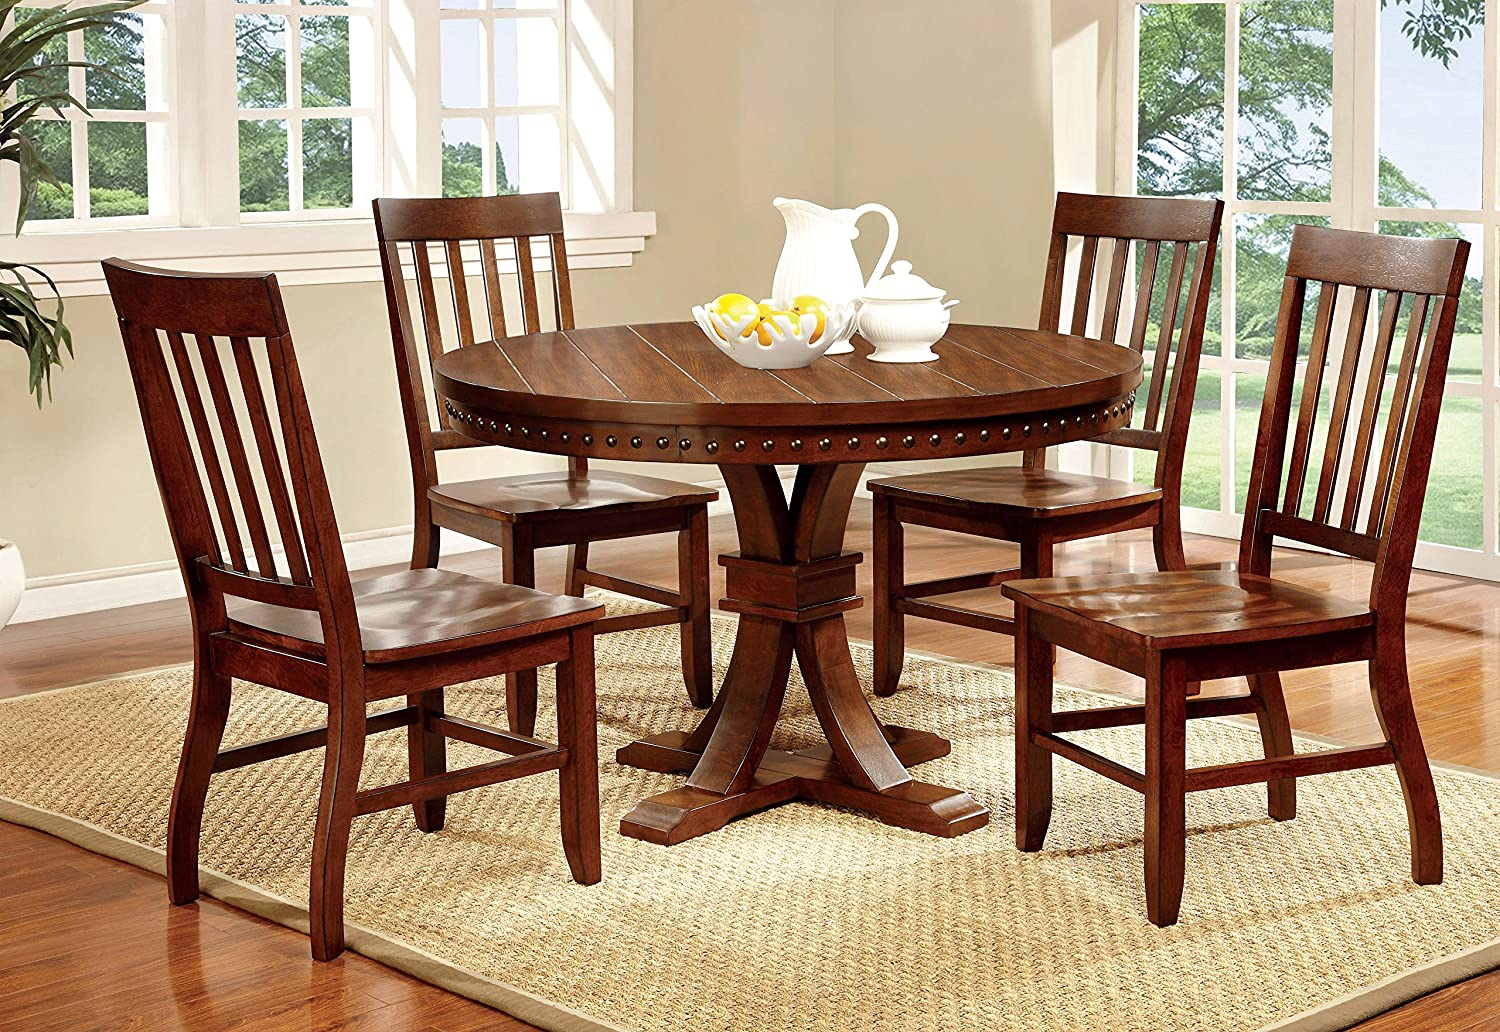 amazon com   furniture of america castile 5 piece transitional round dining table set dark oak   table  u0026 chair sets amazon com   furniture of america castile 5 piece transitional      rh   amazon com